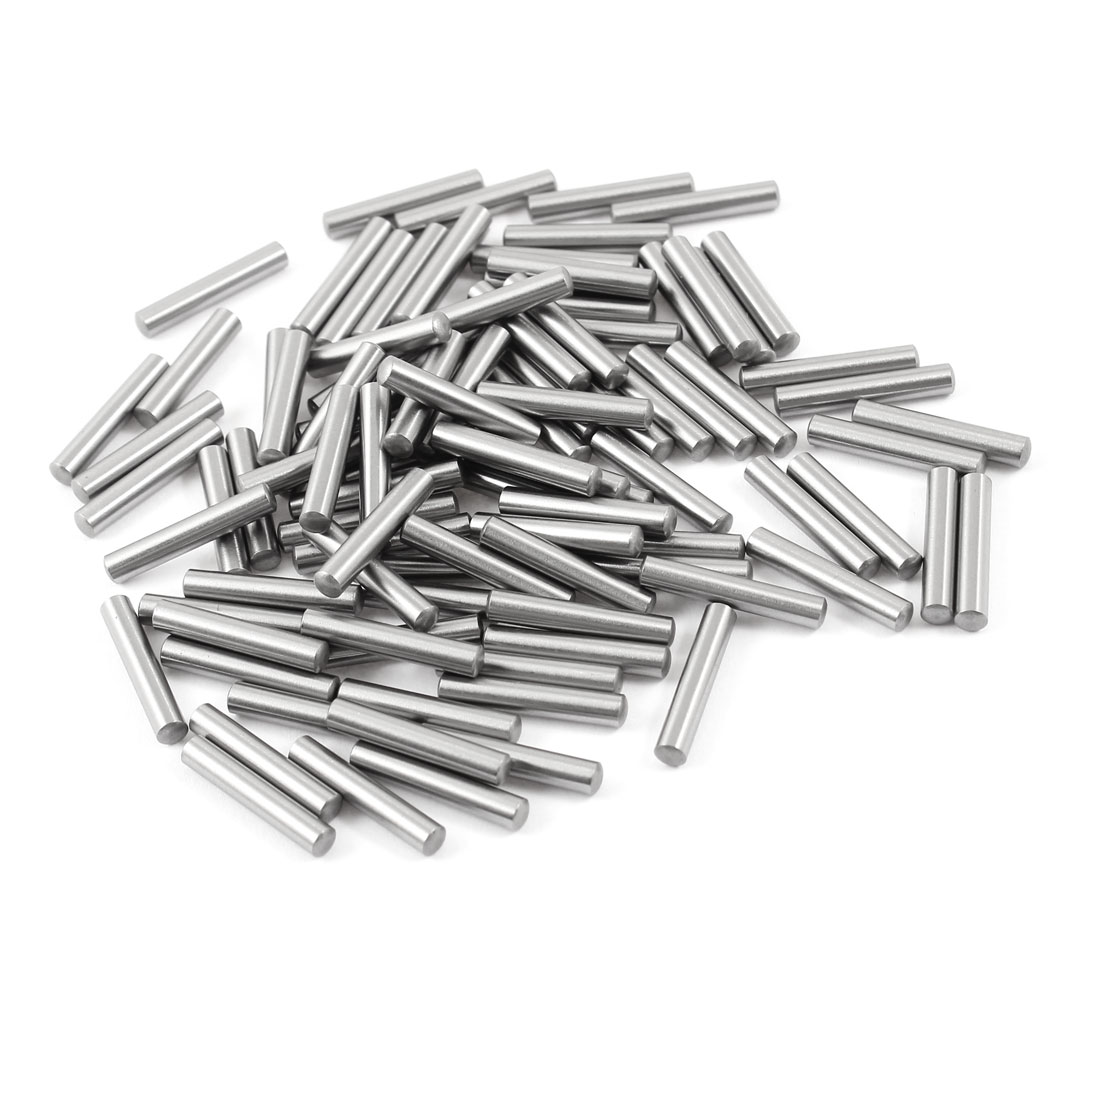 100 Pcs Stainless Steel 3.45mm x 19.8mm Parallel Dowel Pins Fasten Elements Silver Tone